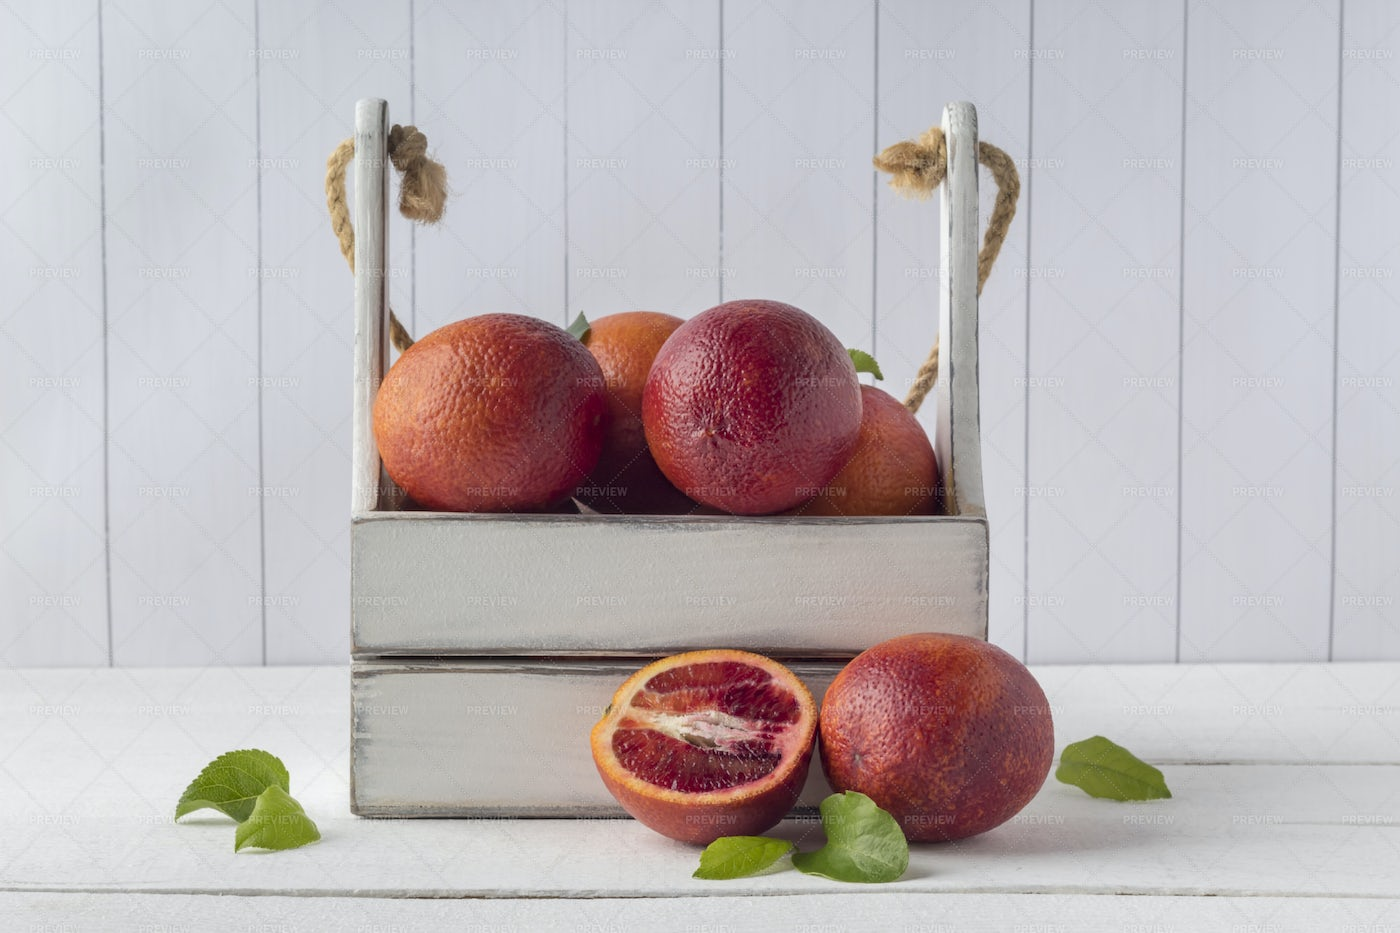 A Crate Of Blood Oranges On White: Stock Photos